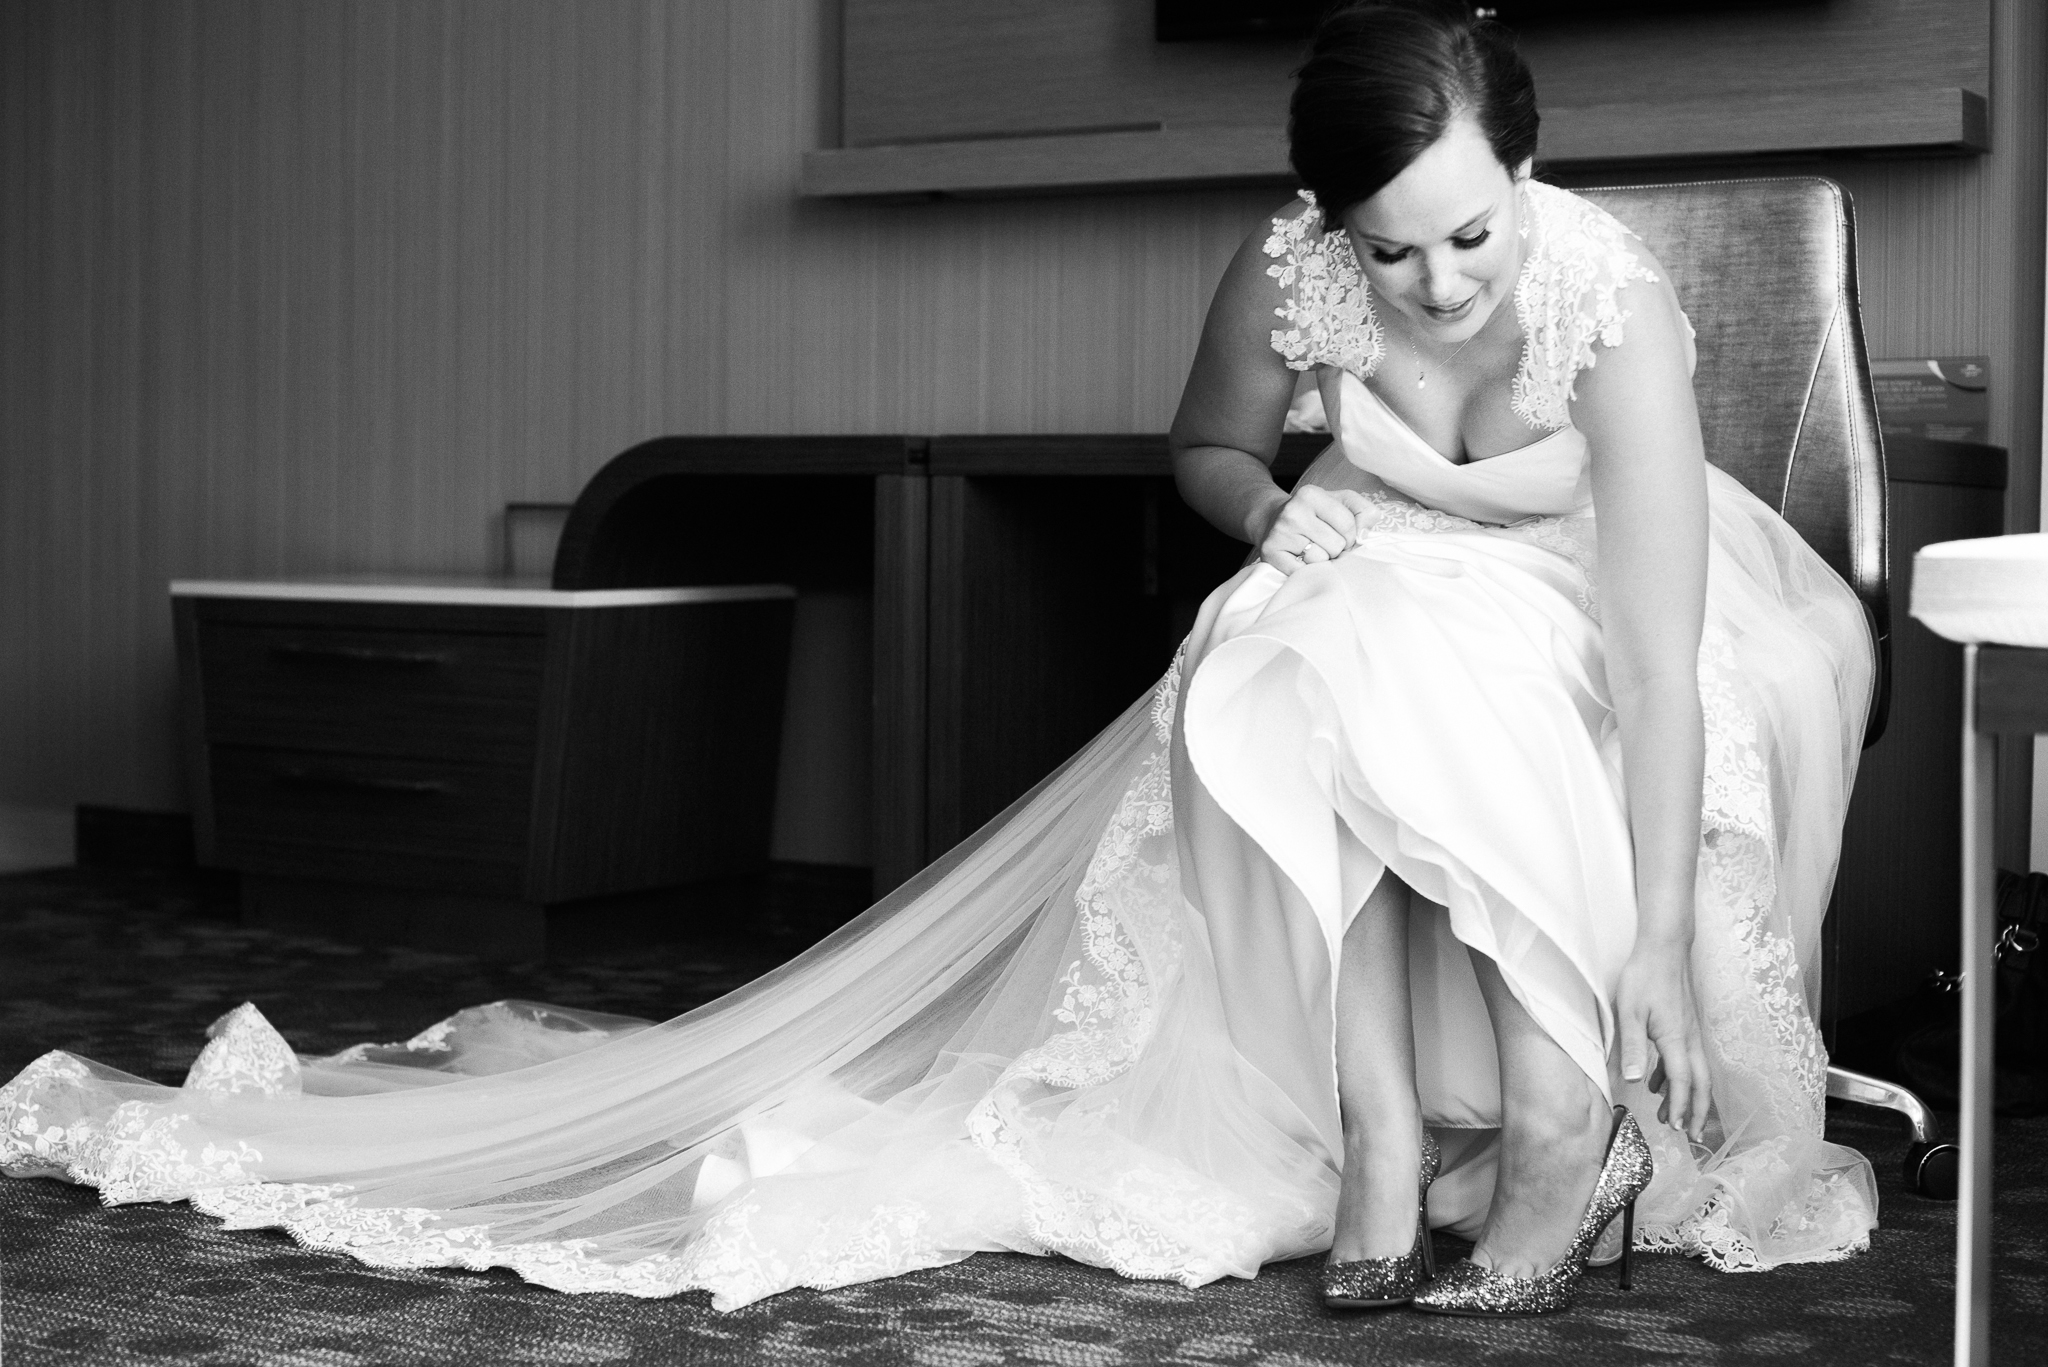 A bride gets ready for her wedding day